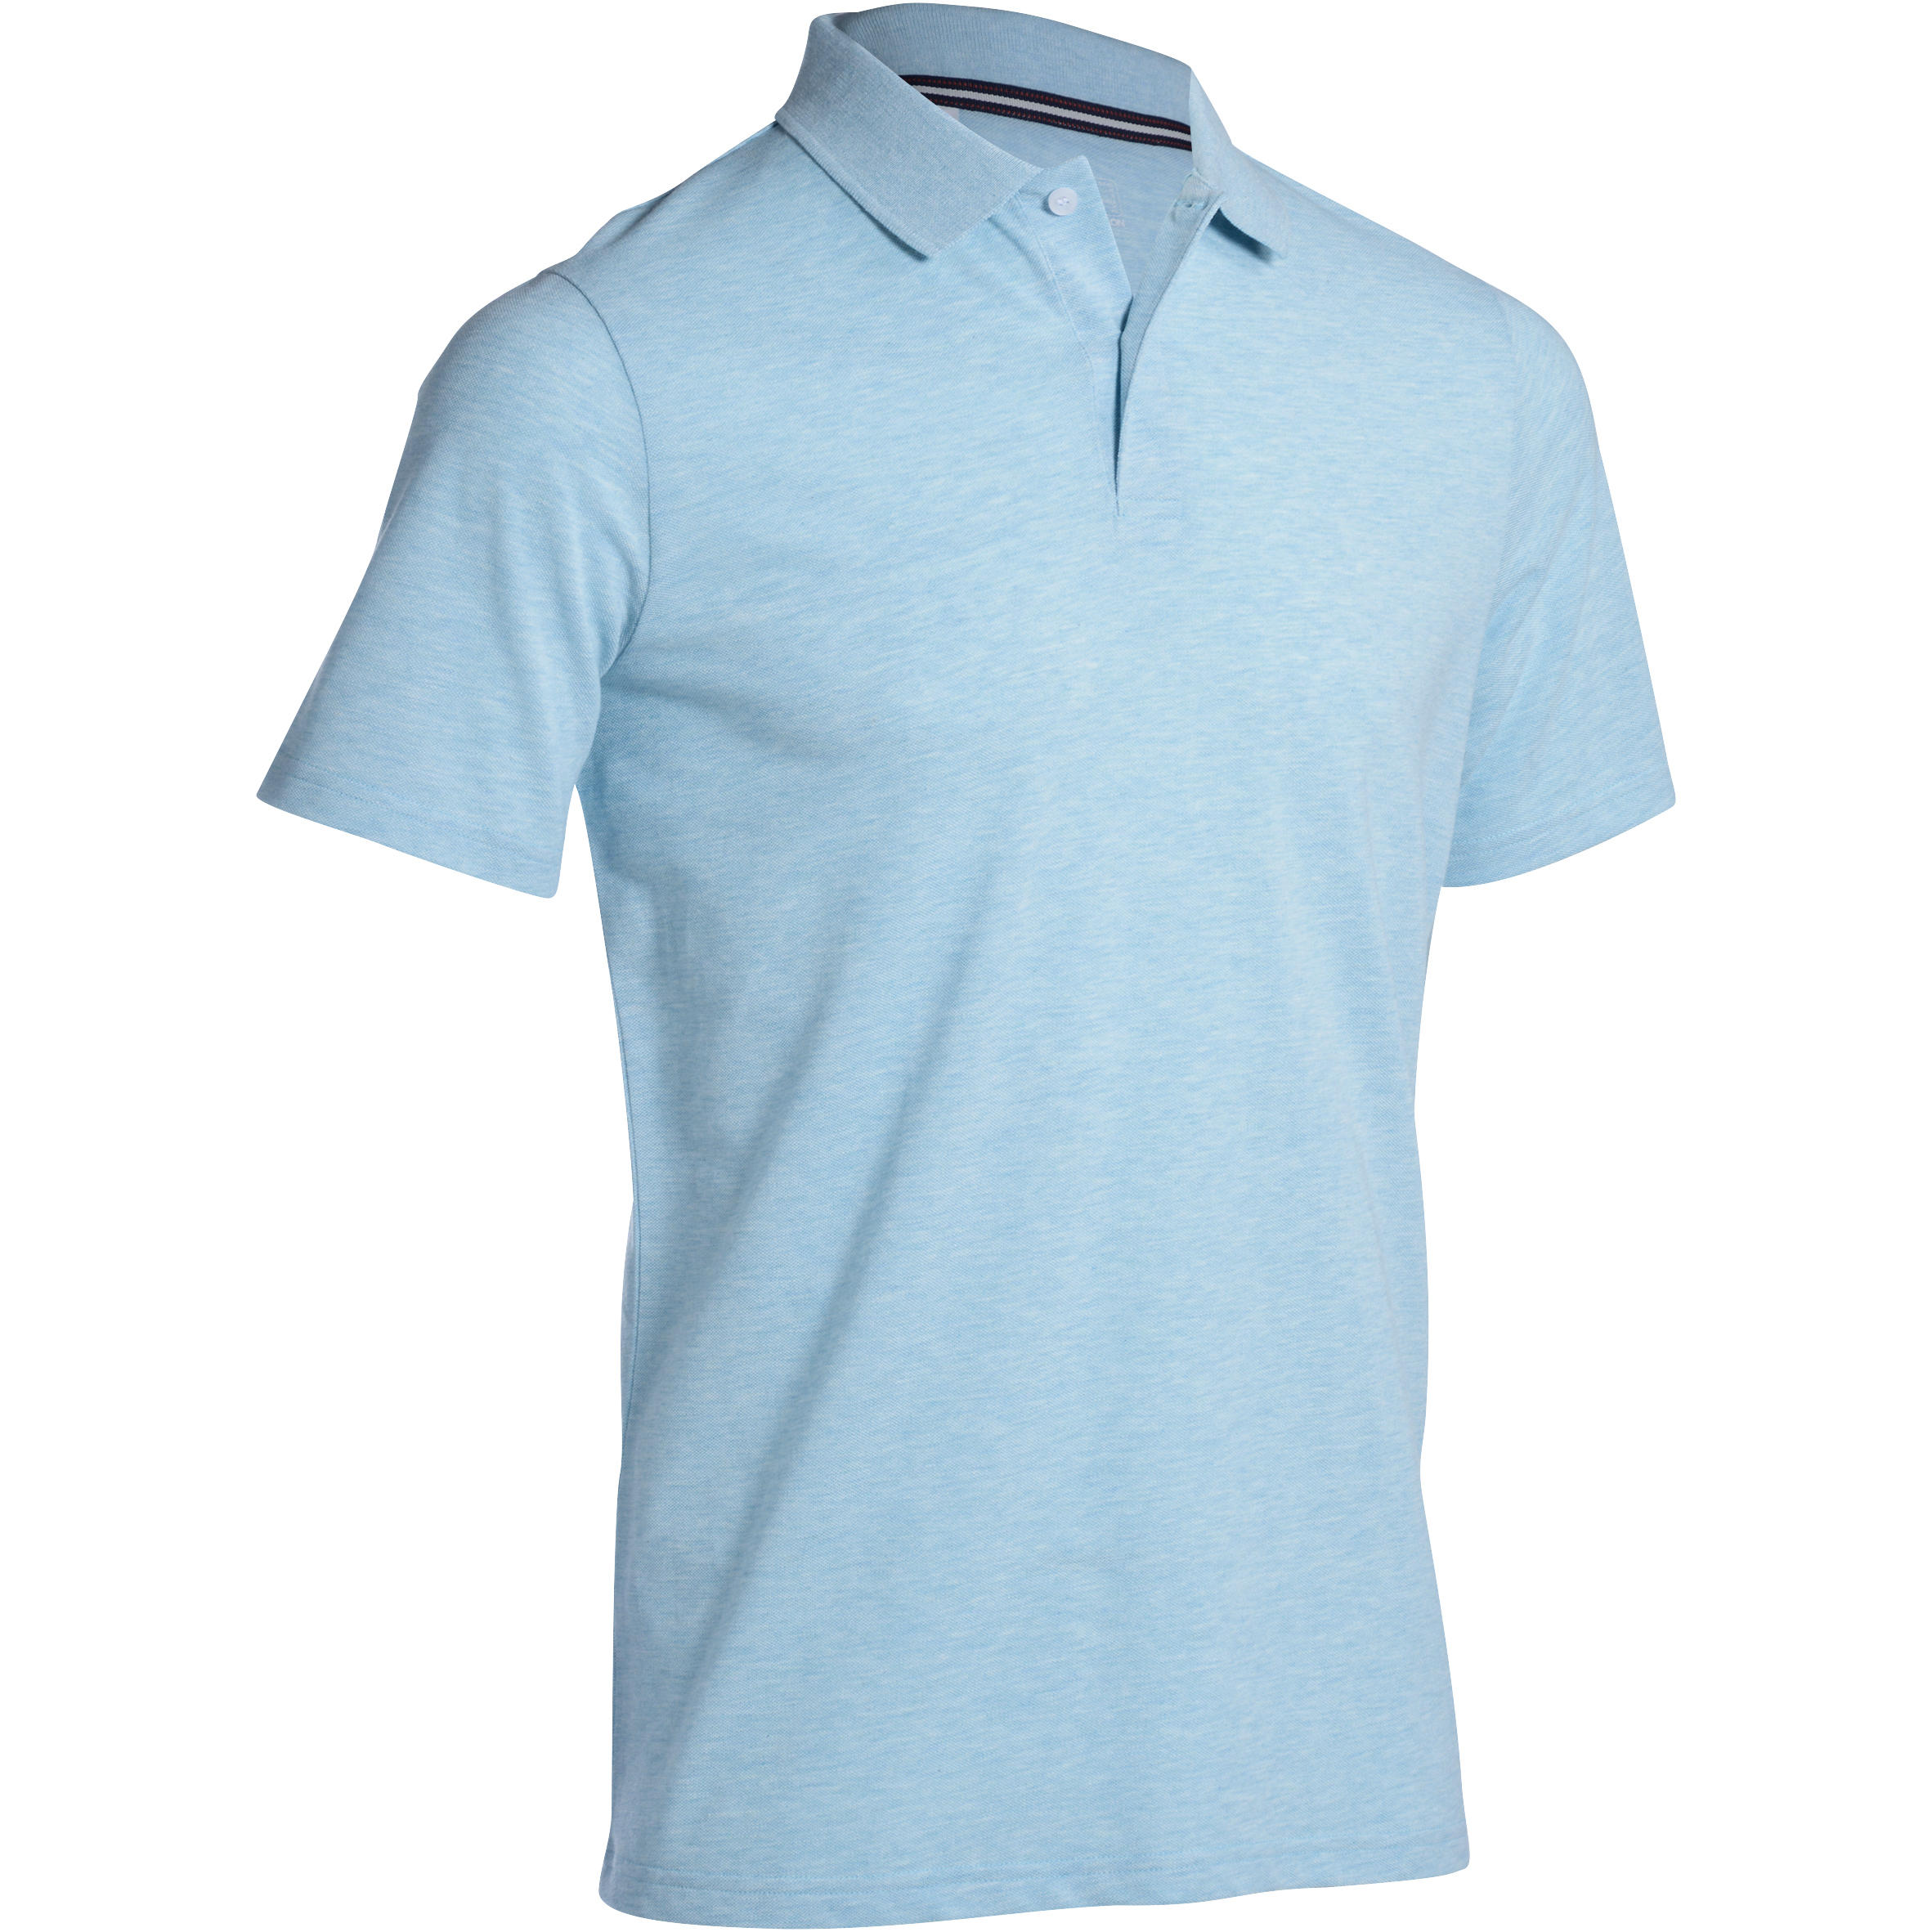 POLO GOLF HOMME 500 MENTHE chiné